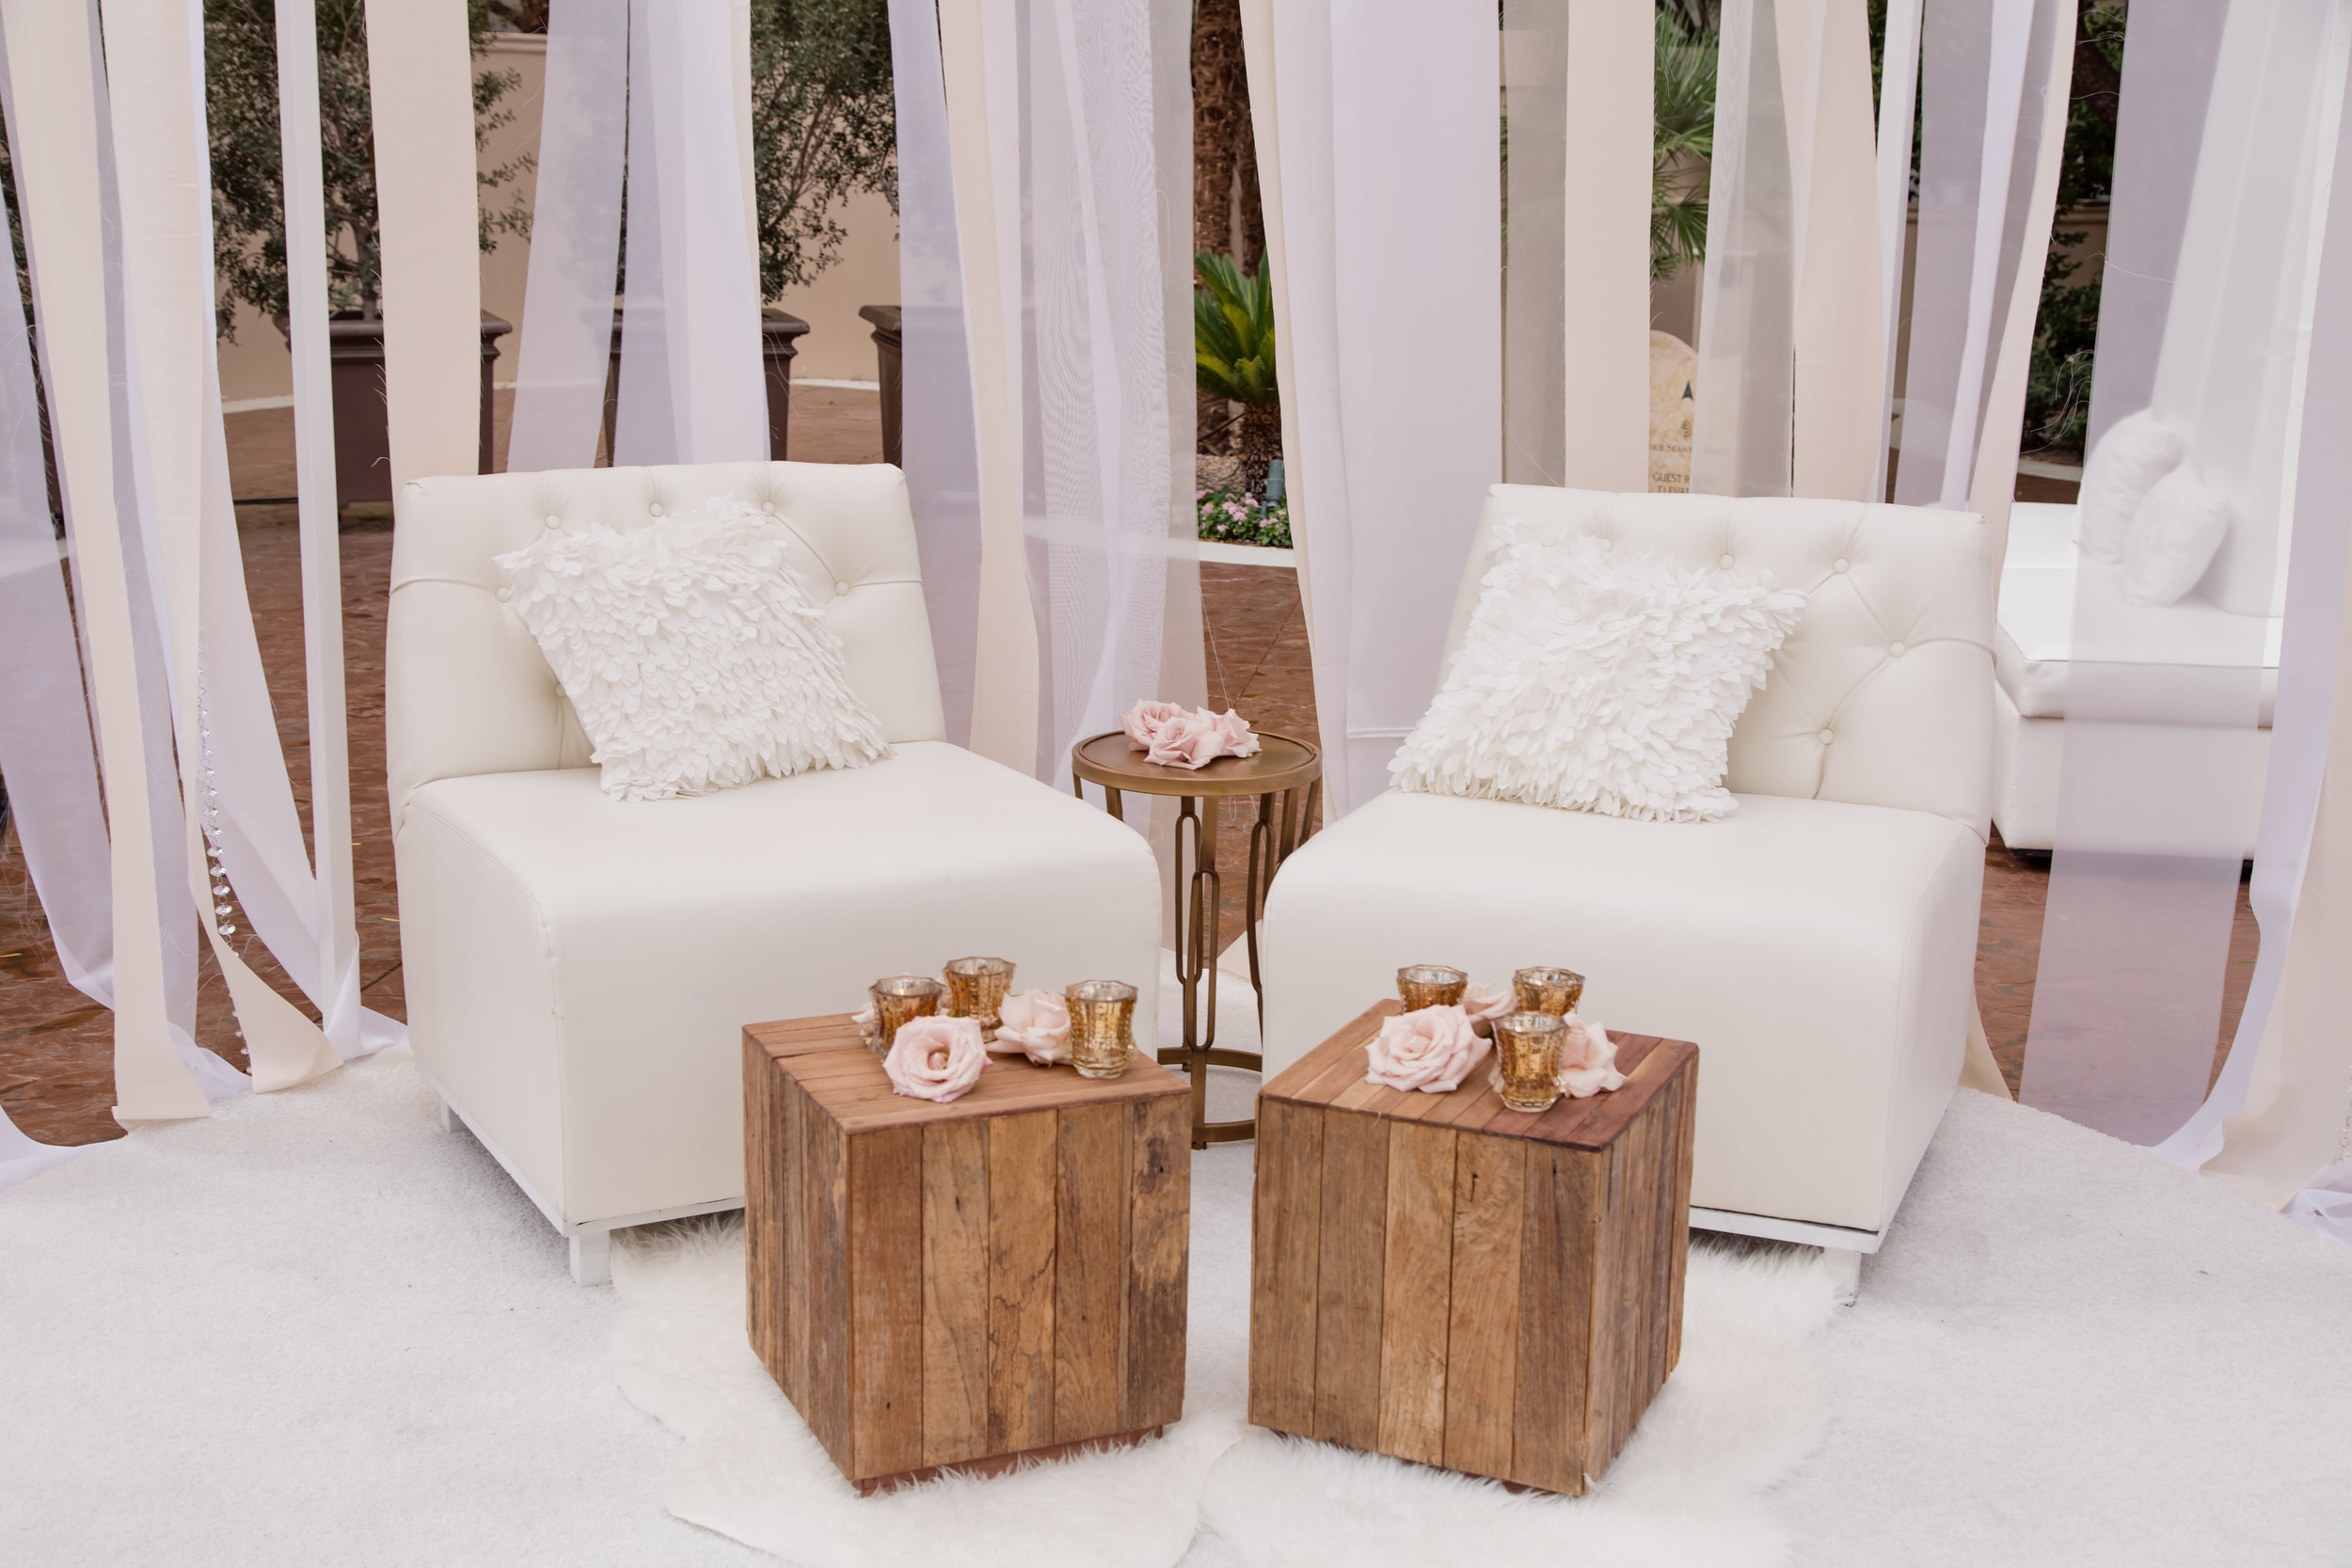 White club chairs and wooden tables at upscale wedding in Las Vegas. Destination Wedding Planner  Andrea Eppolito ·Photos by  Adam Frazier Photography ·Floral and Decor by  Destinations by Design · Lighting by  LED Unplugged ·Venue · Invitations  Ceci New York  · Menus by  Alligator Soup